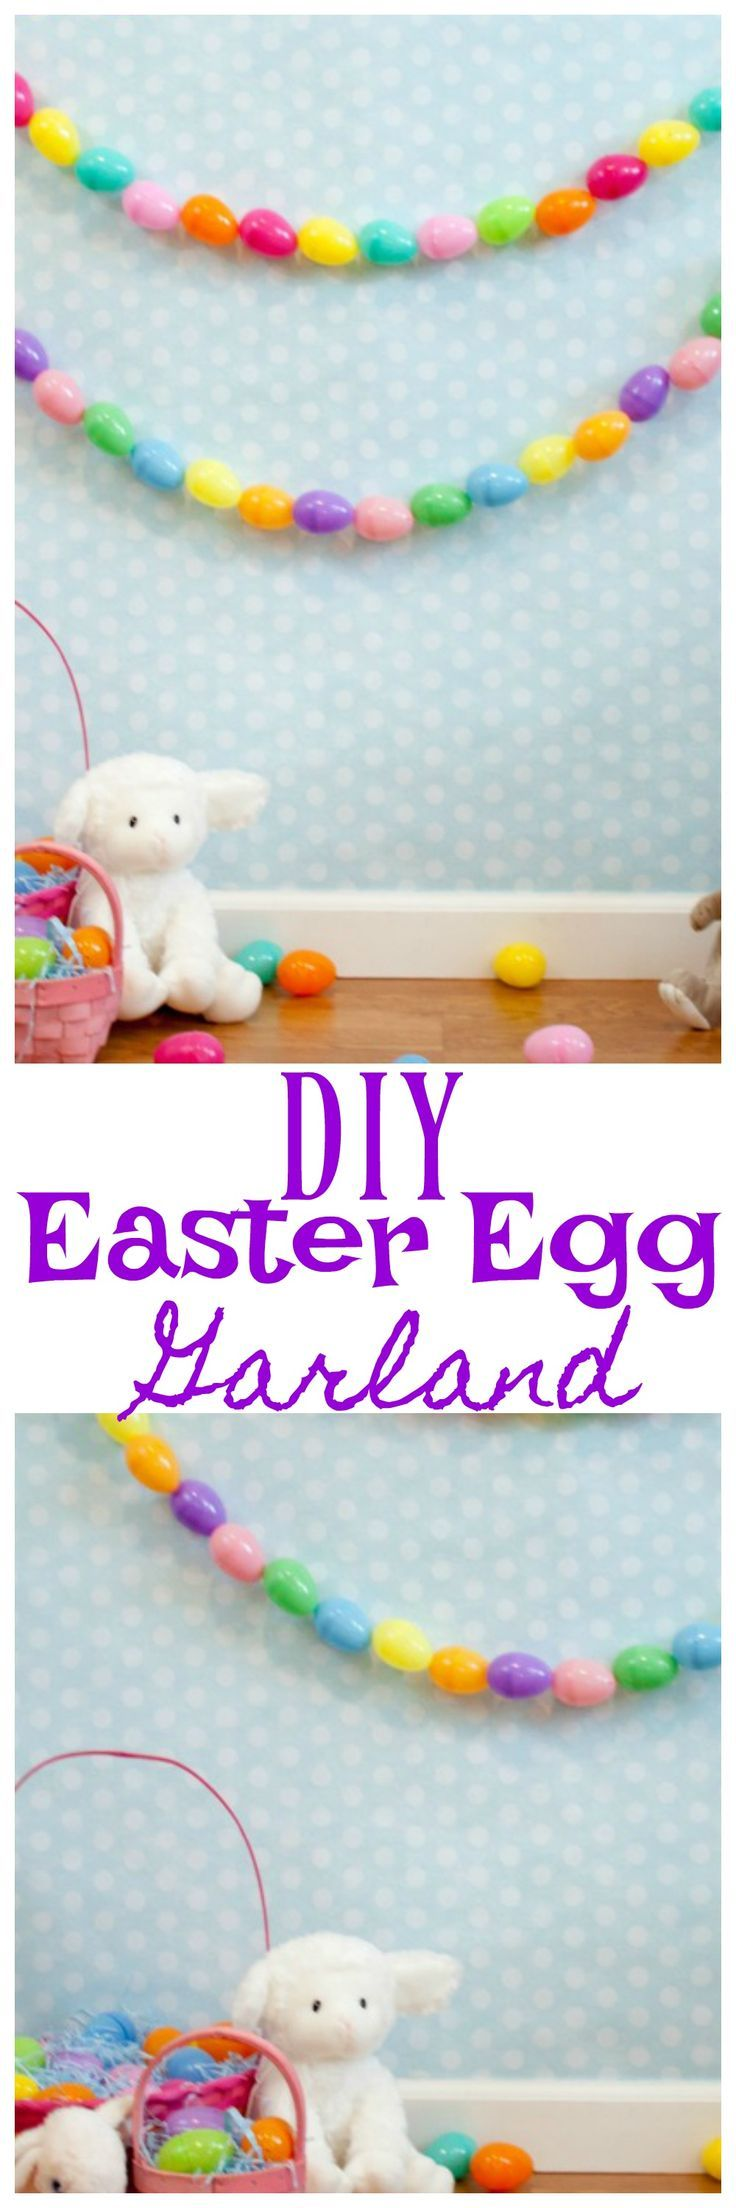 DIY Easter egg garland is super easy to make and the perfect Easter Decoration! Using plastic Easter Eggs you can easily make this DIY Easter egg garland. #Easter #eastercrafts  #easterbunny  #easterdecorations #diy